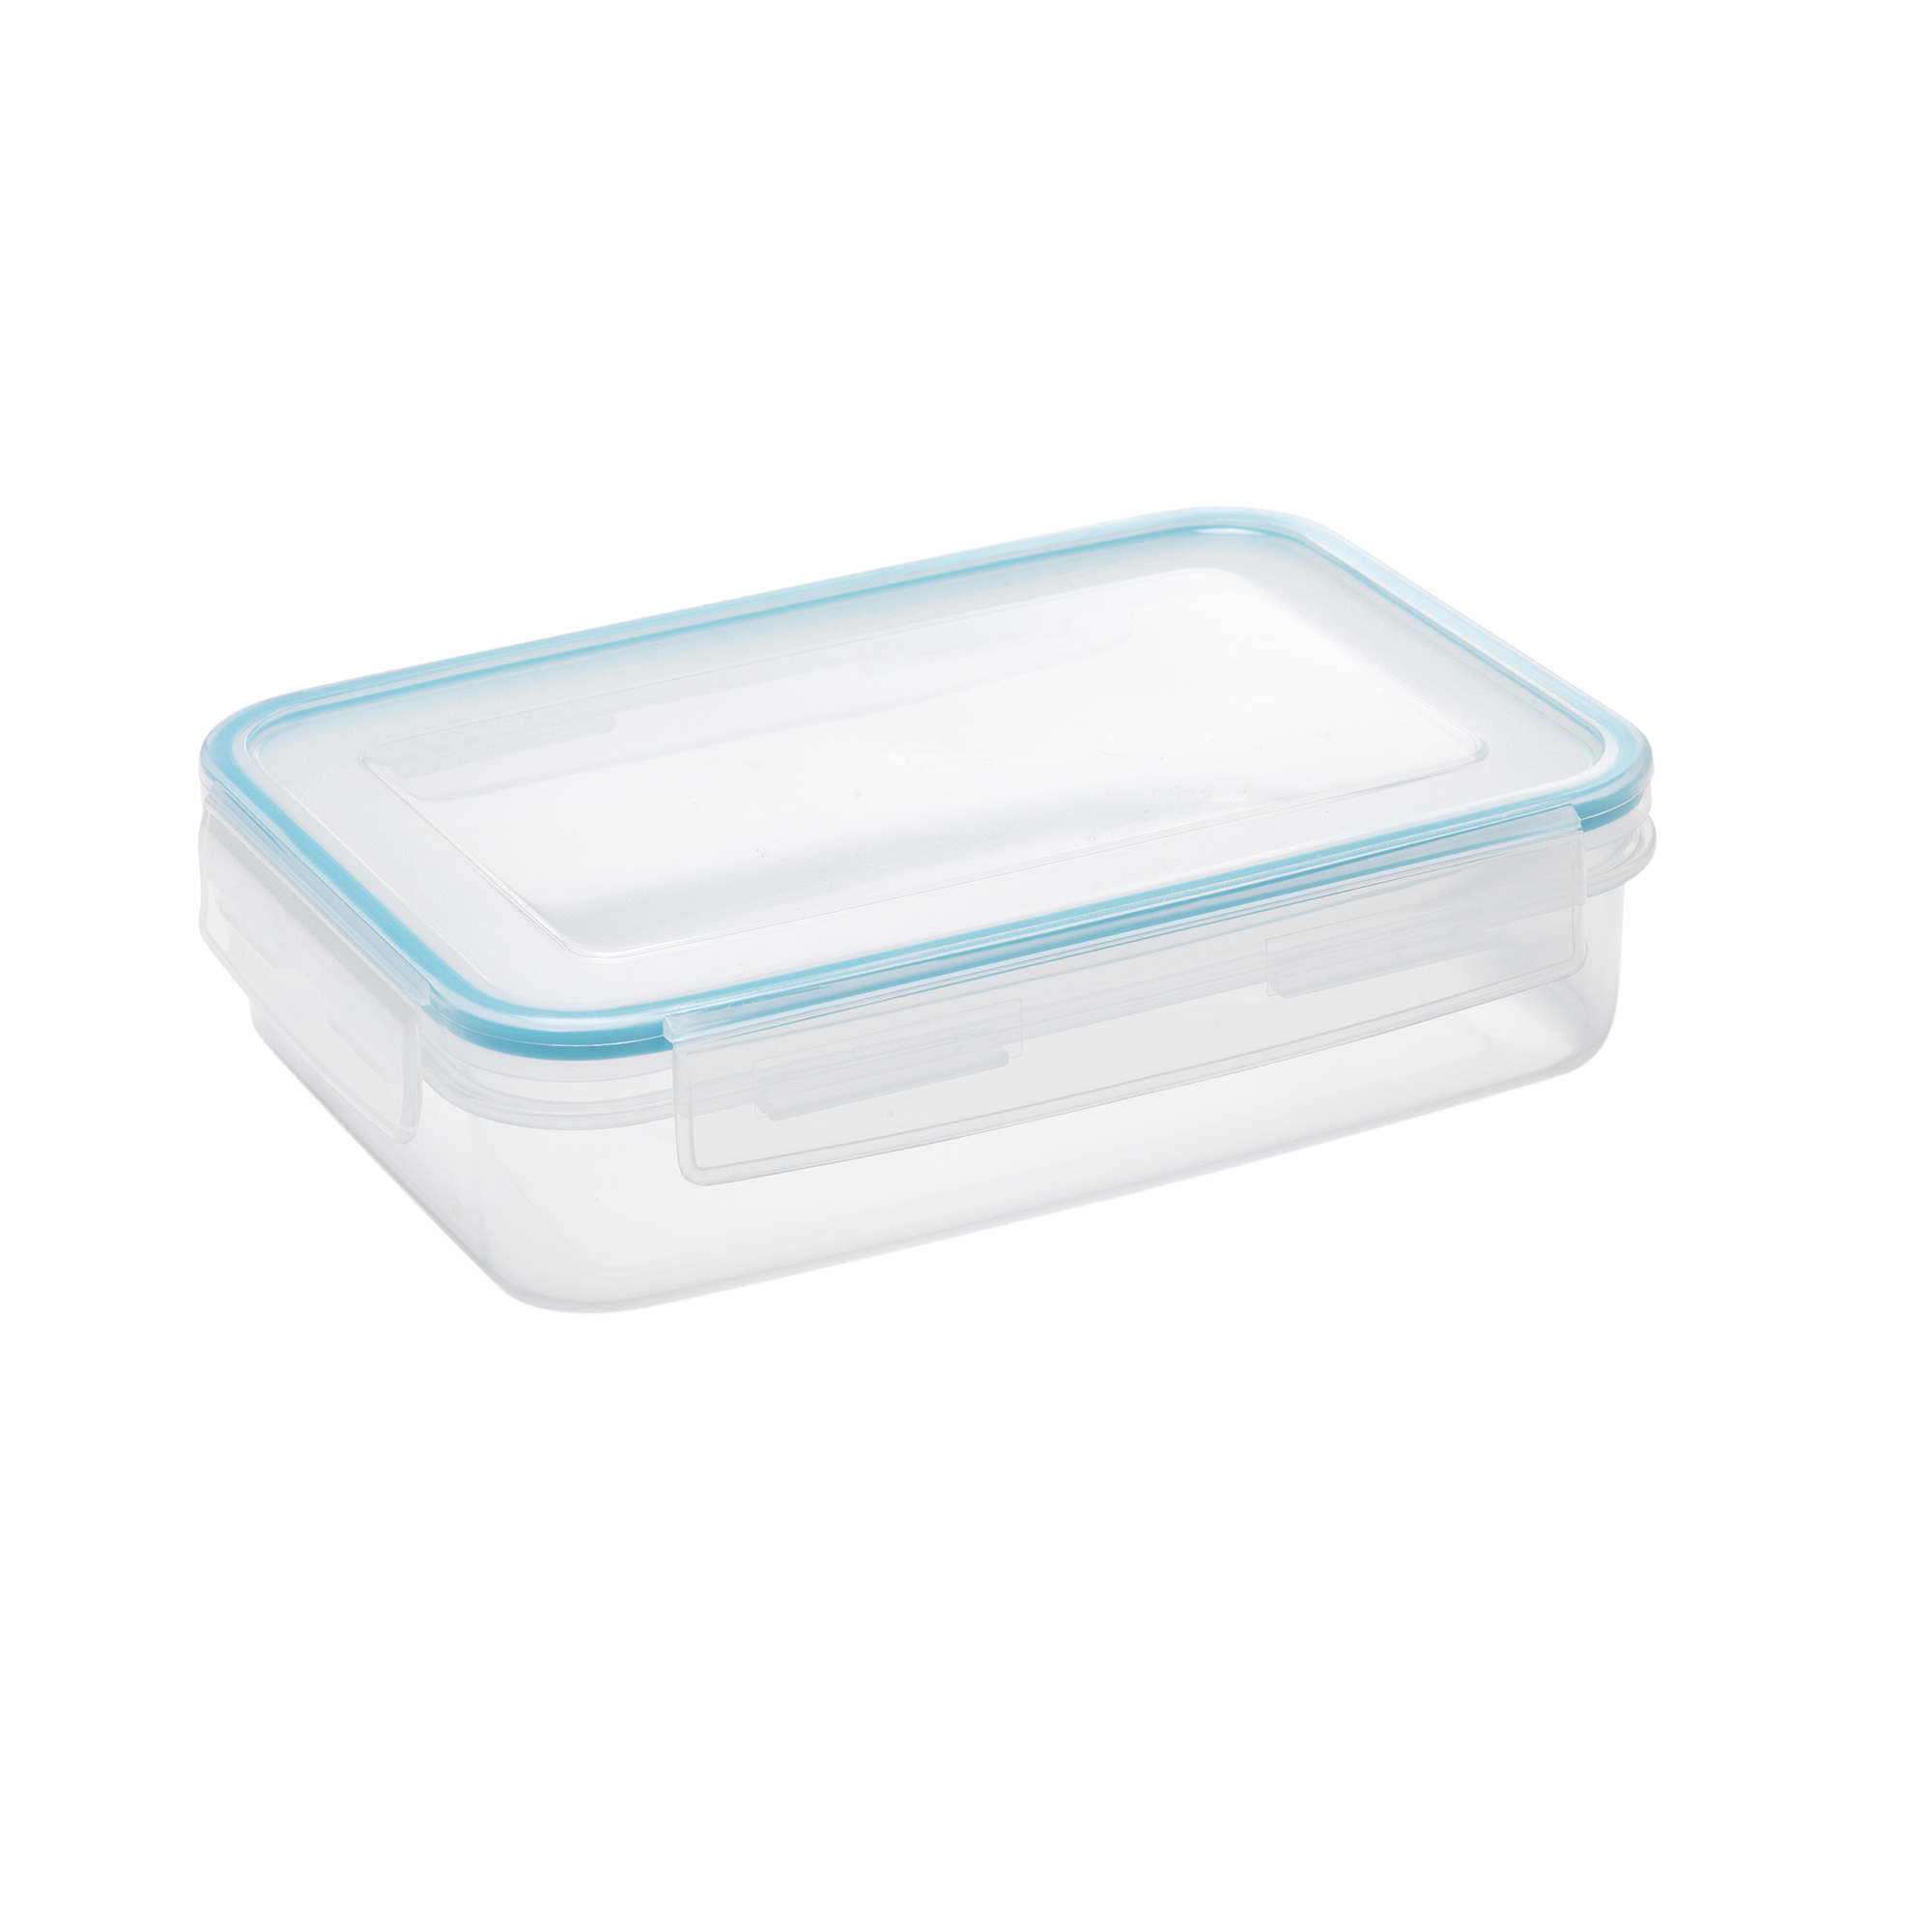 Addis Clip & Close Rectangle 1.1 litre Container Ref 502263